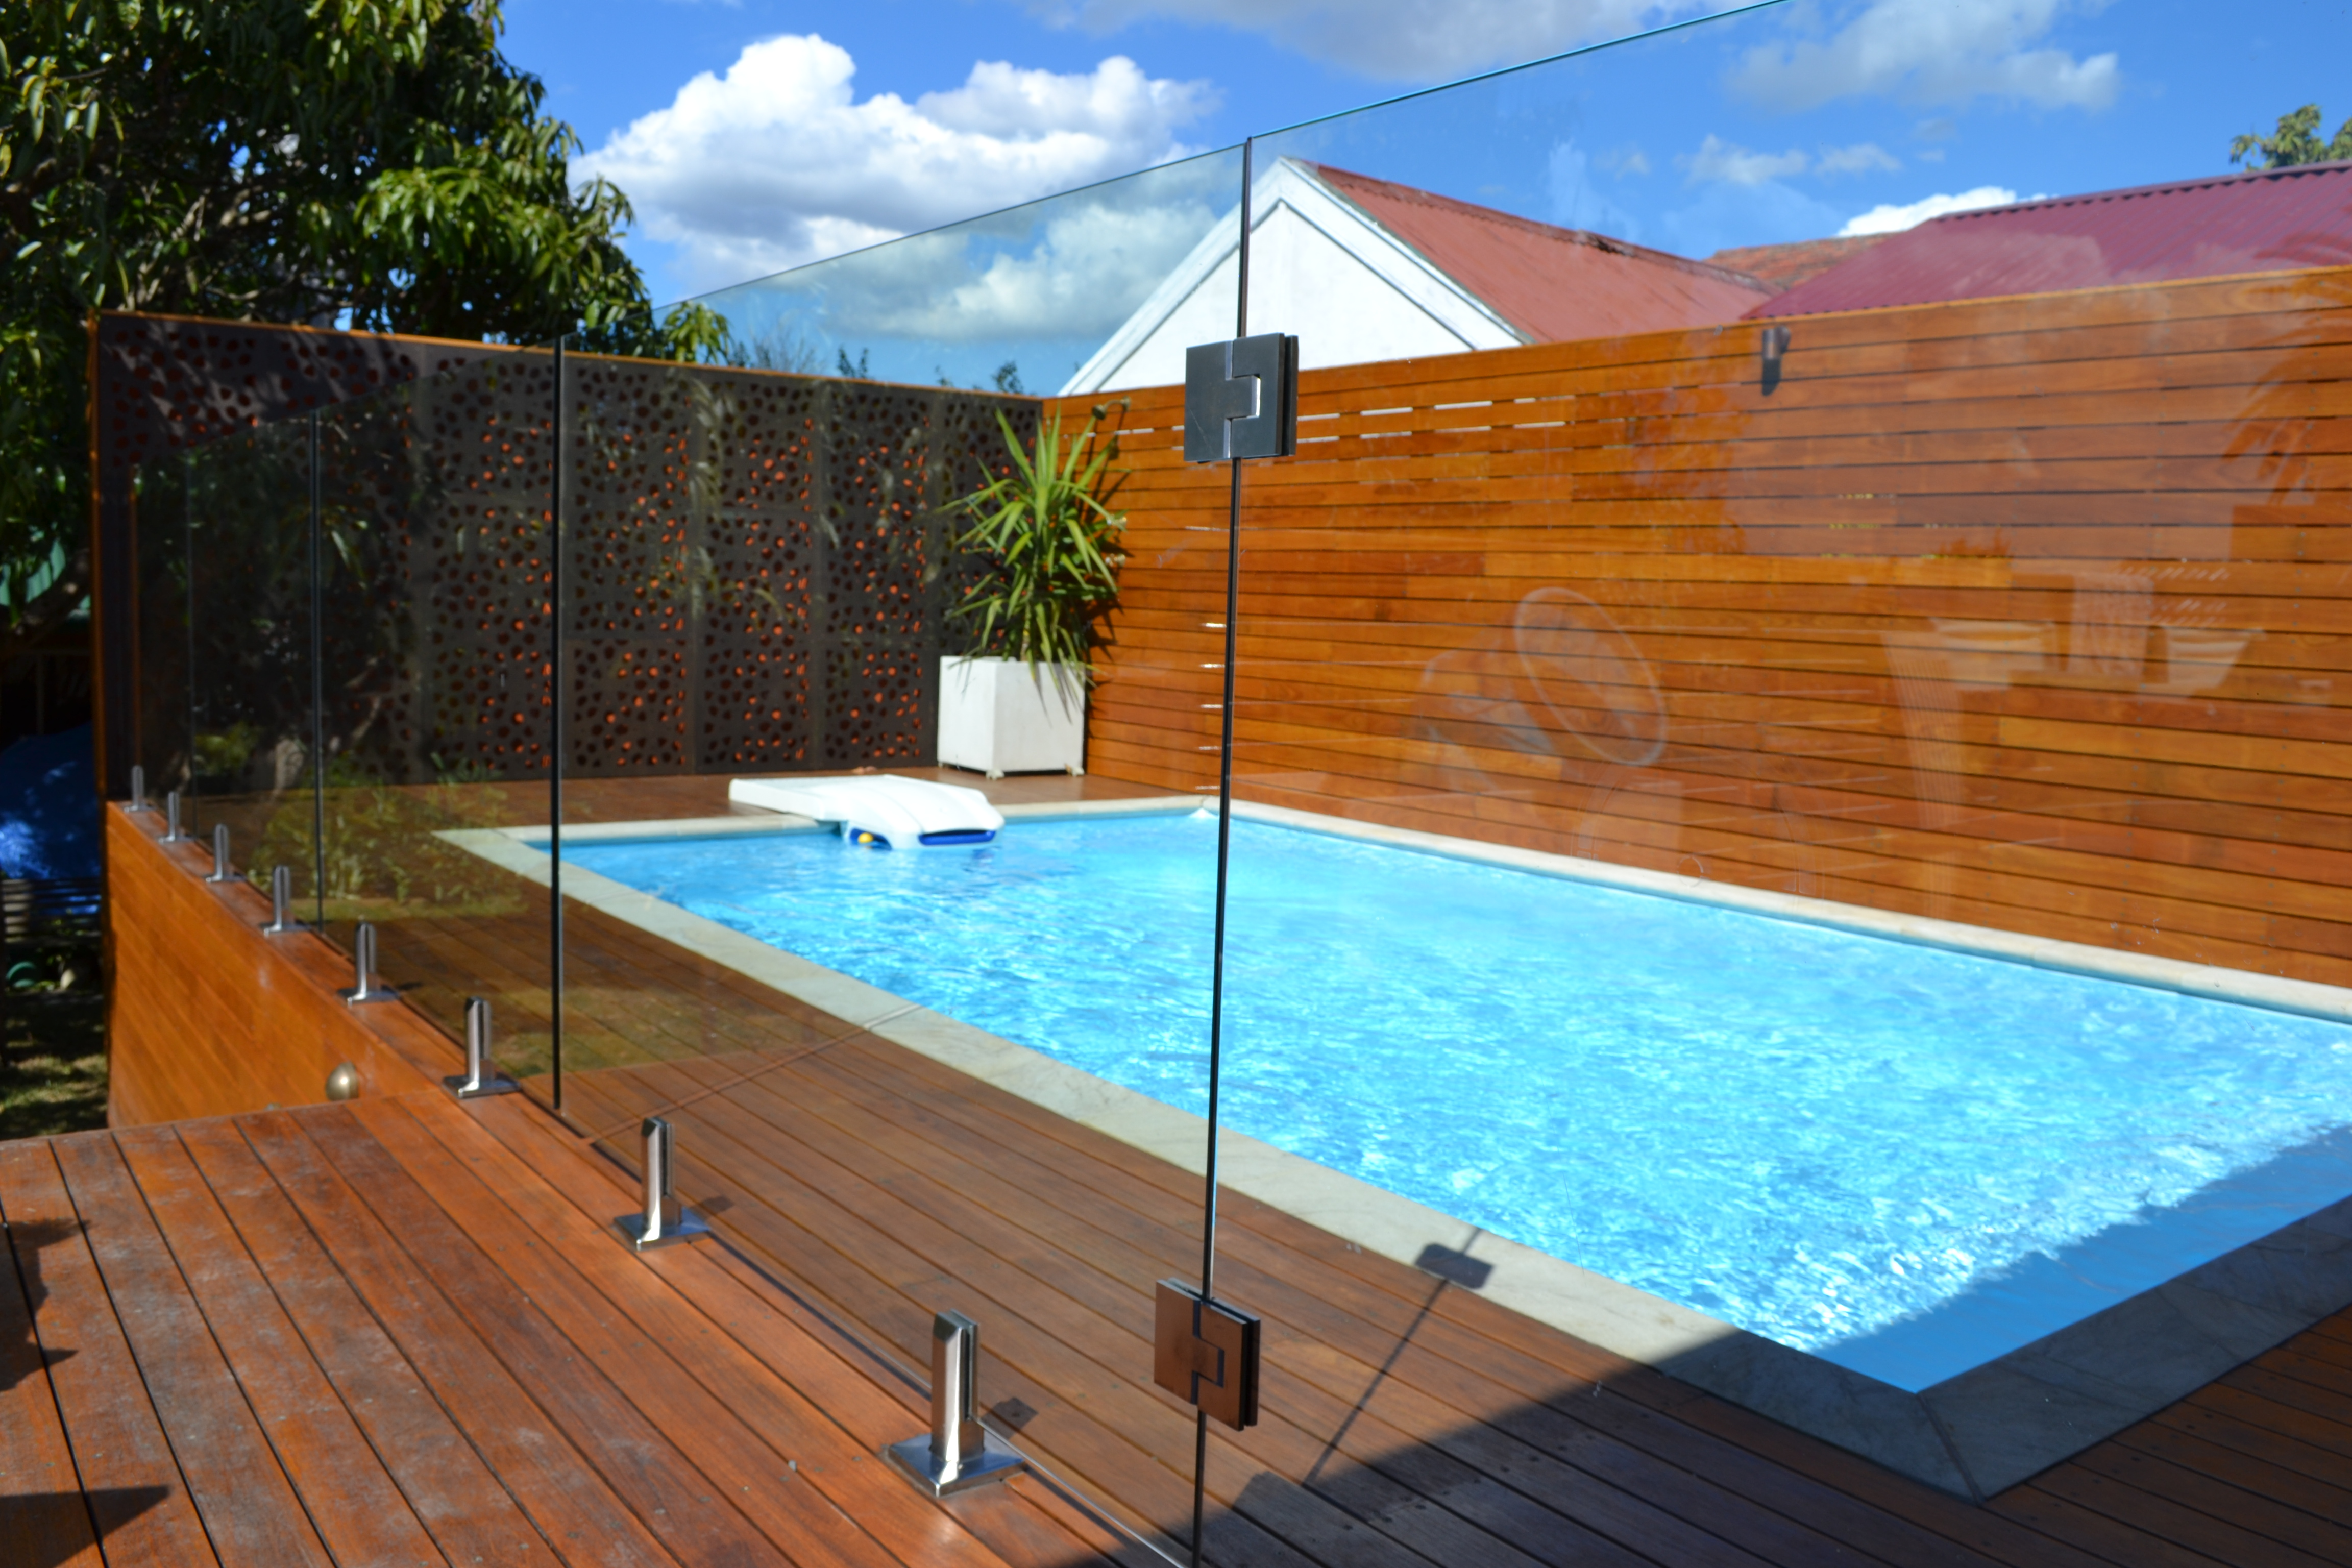 Frameless Glass Doors - Hinges For Glass & Door Hinges For Frameless Glass Pool Fencing Doors And Gates ... pezcame.com